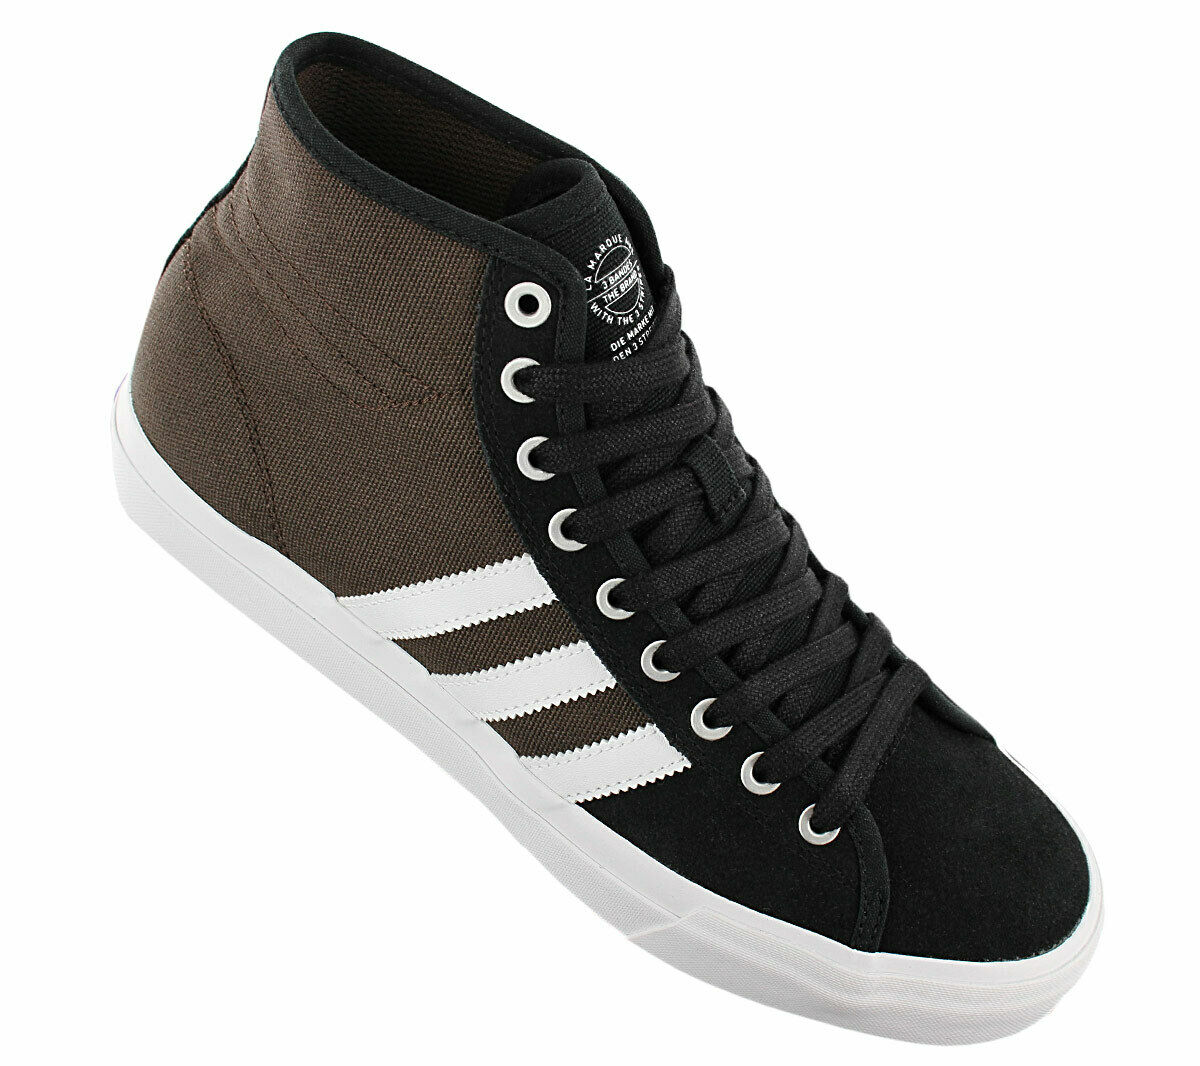 956fa915b1beb NEW adidas Originals Matchcourt High Men´s shoes Trainers Sneakers SAL  BB8590 RX nrrqnt907-Athletic Shoes